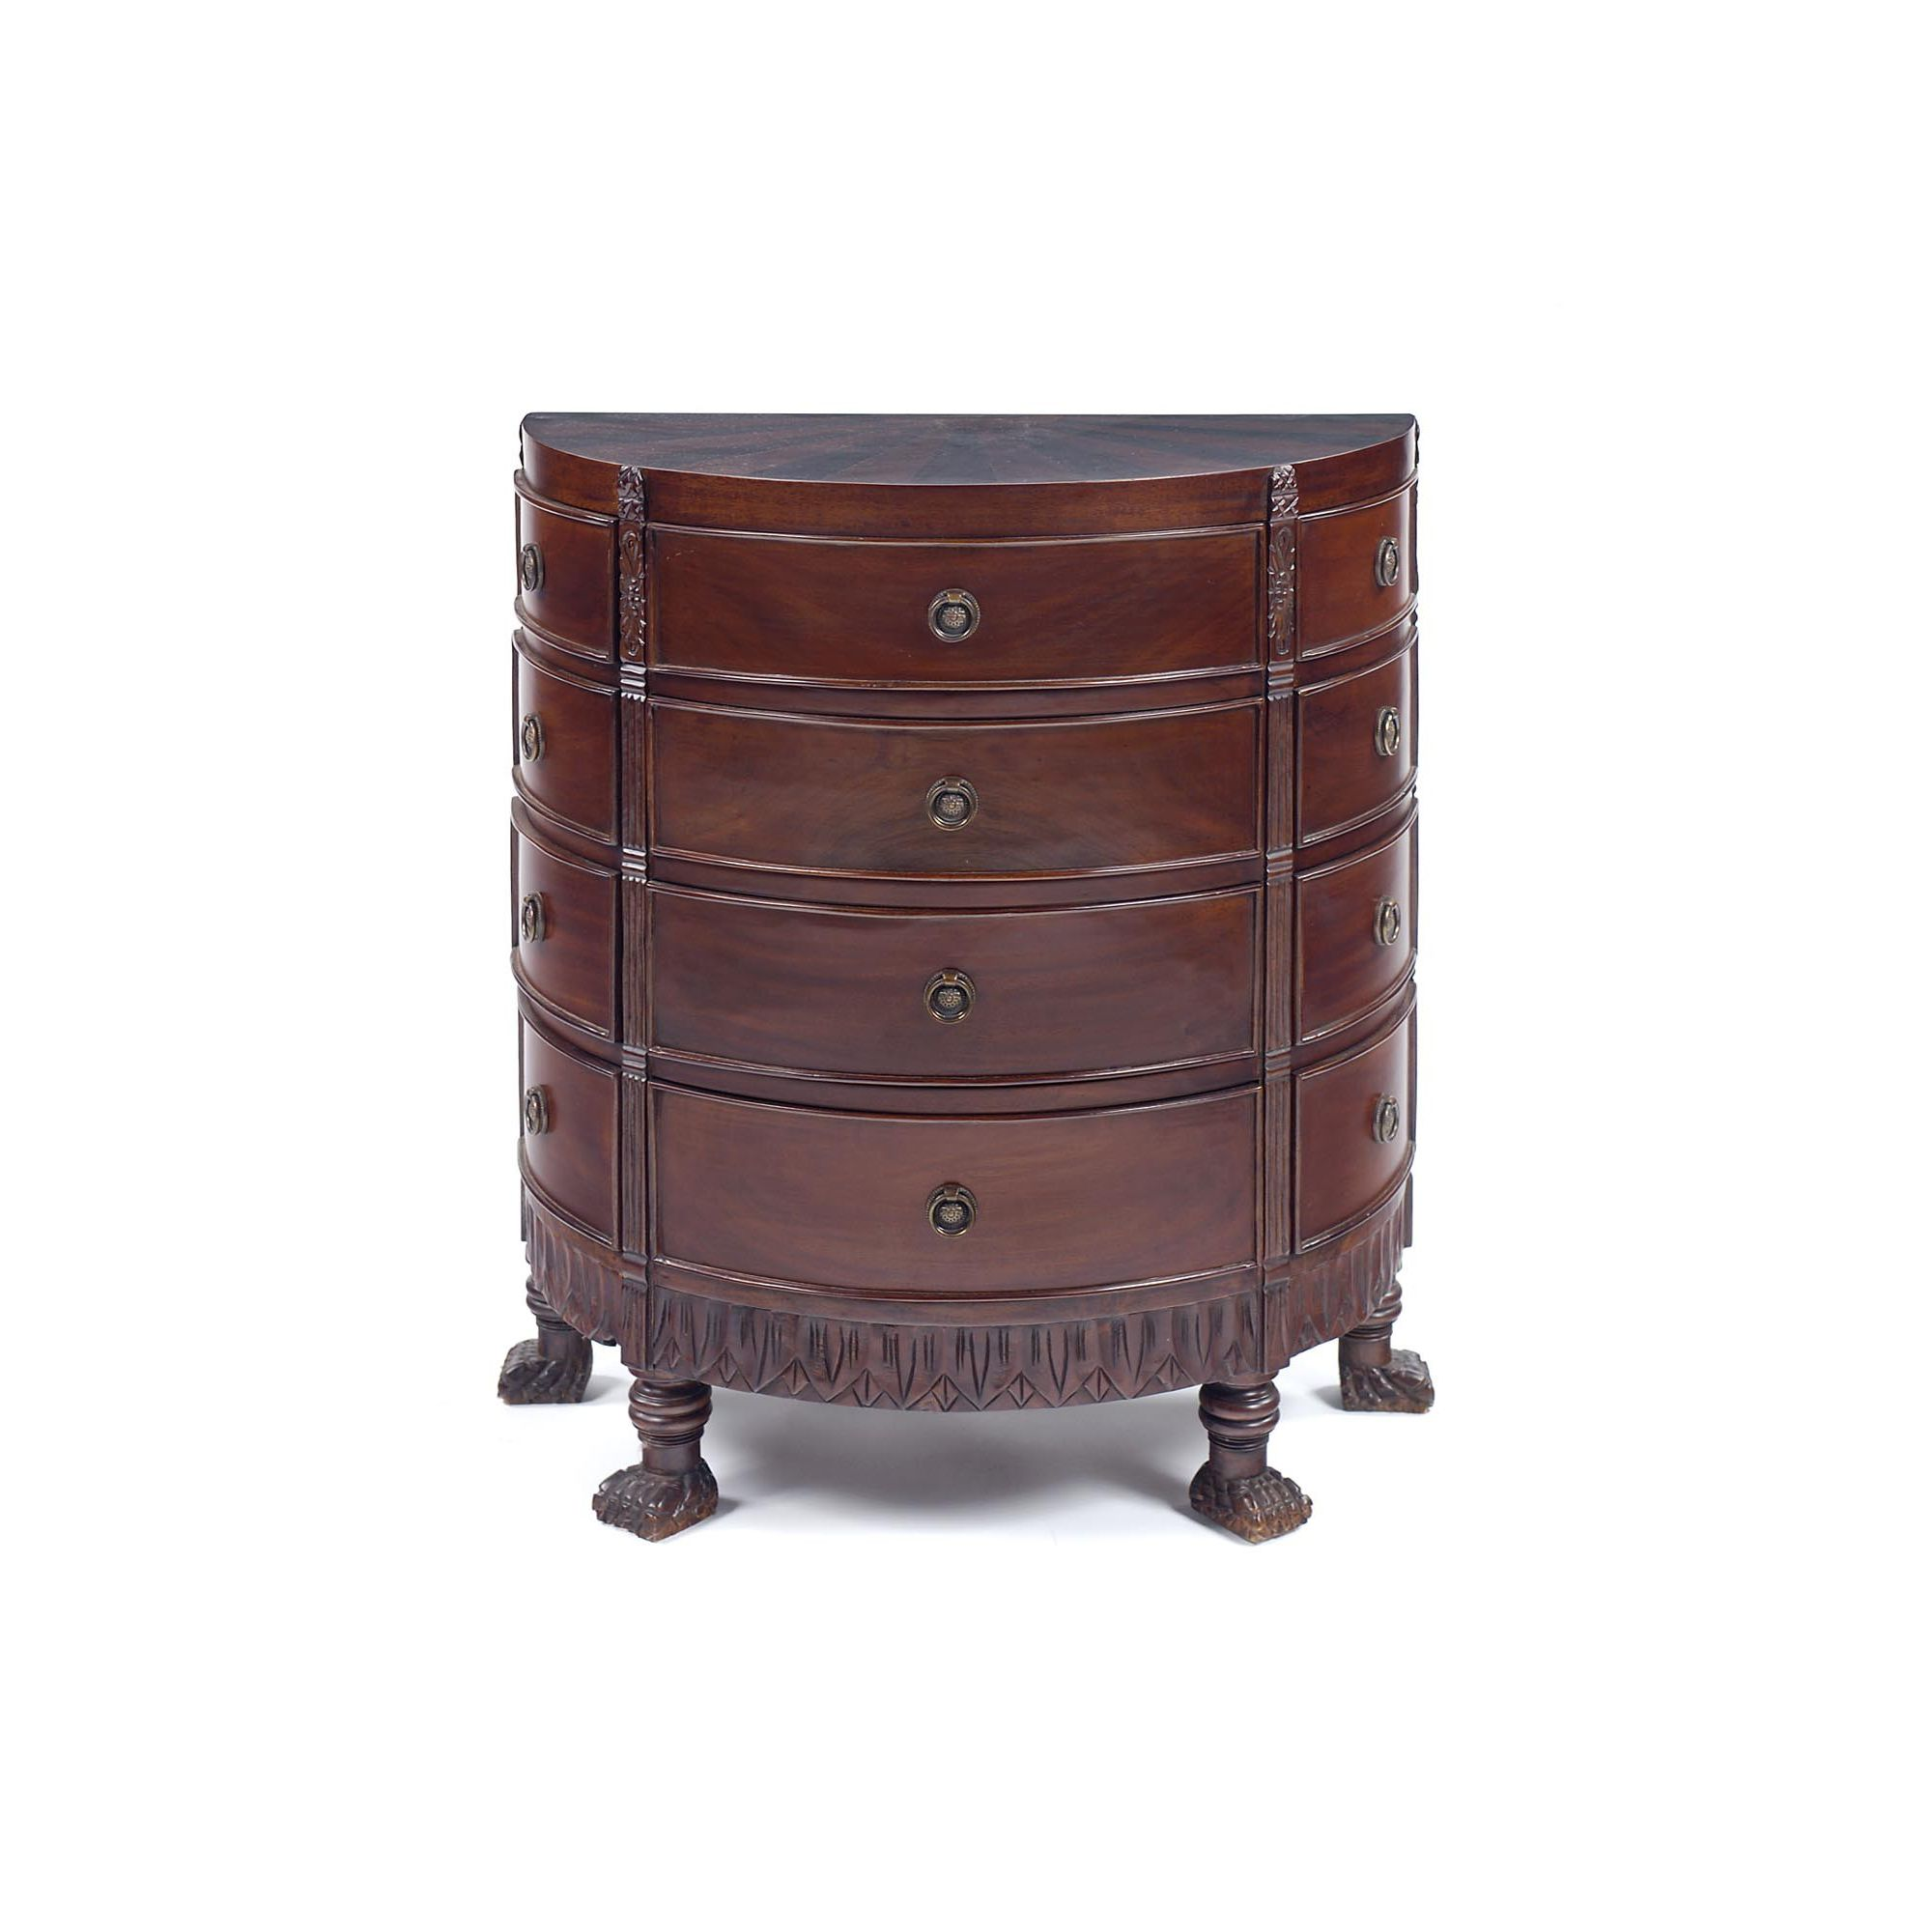 Anderson Bradshaw Georgian Sunburst Chest in Antique Brass in Mahogany at Tesco Direct